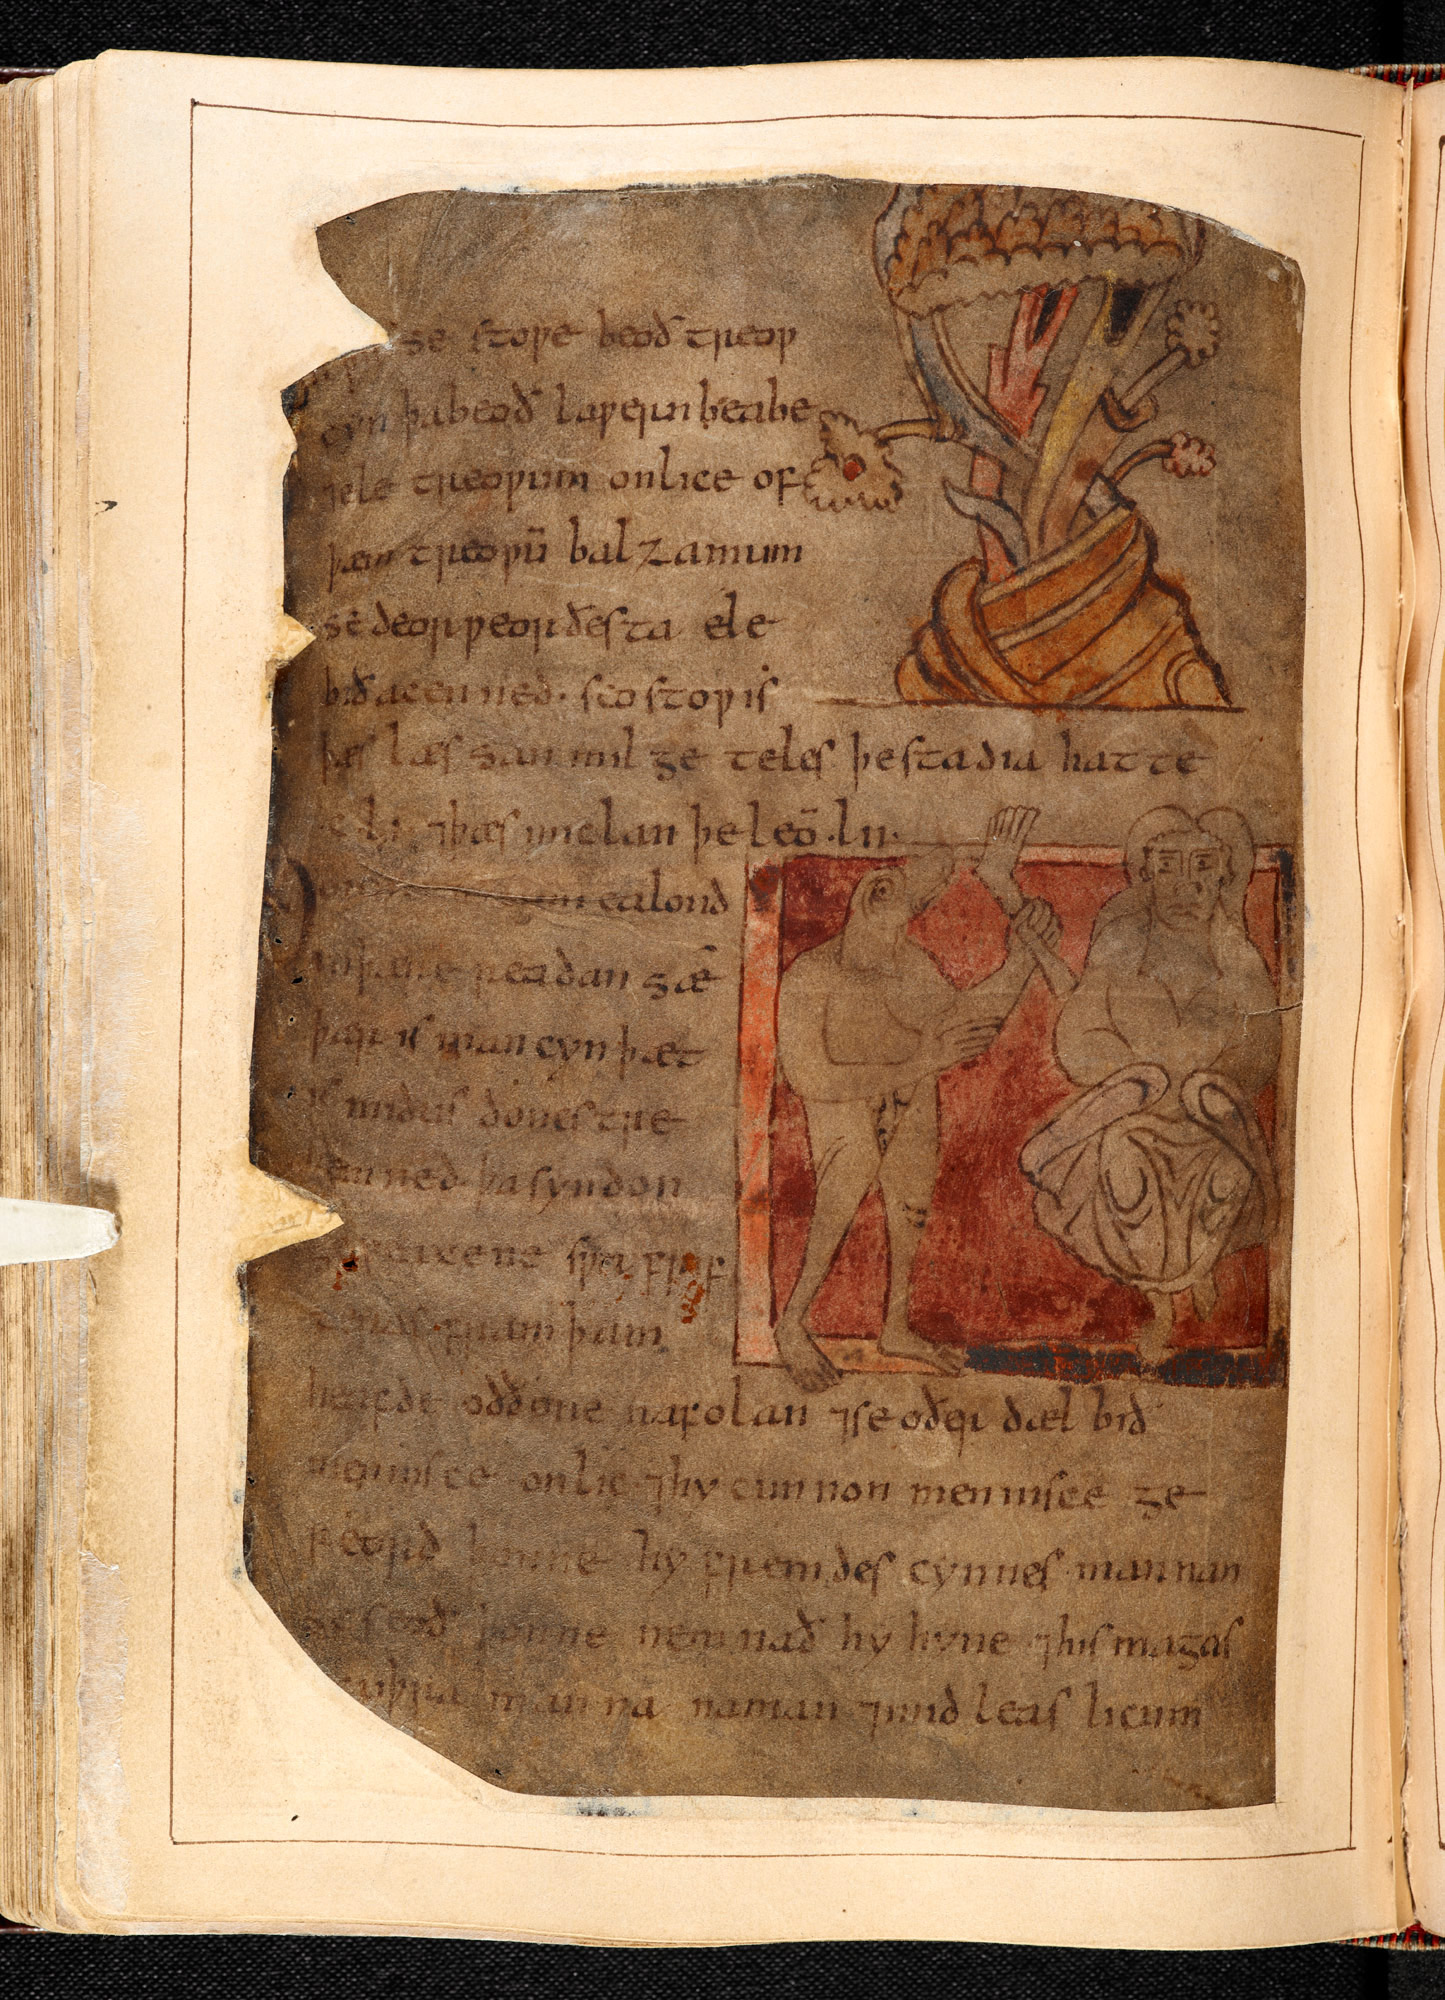 Monsters and heroes in Beowulf - The British Library